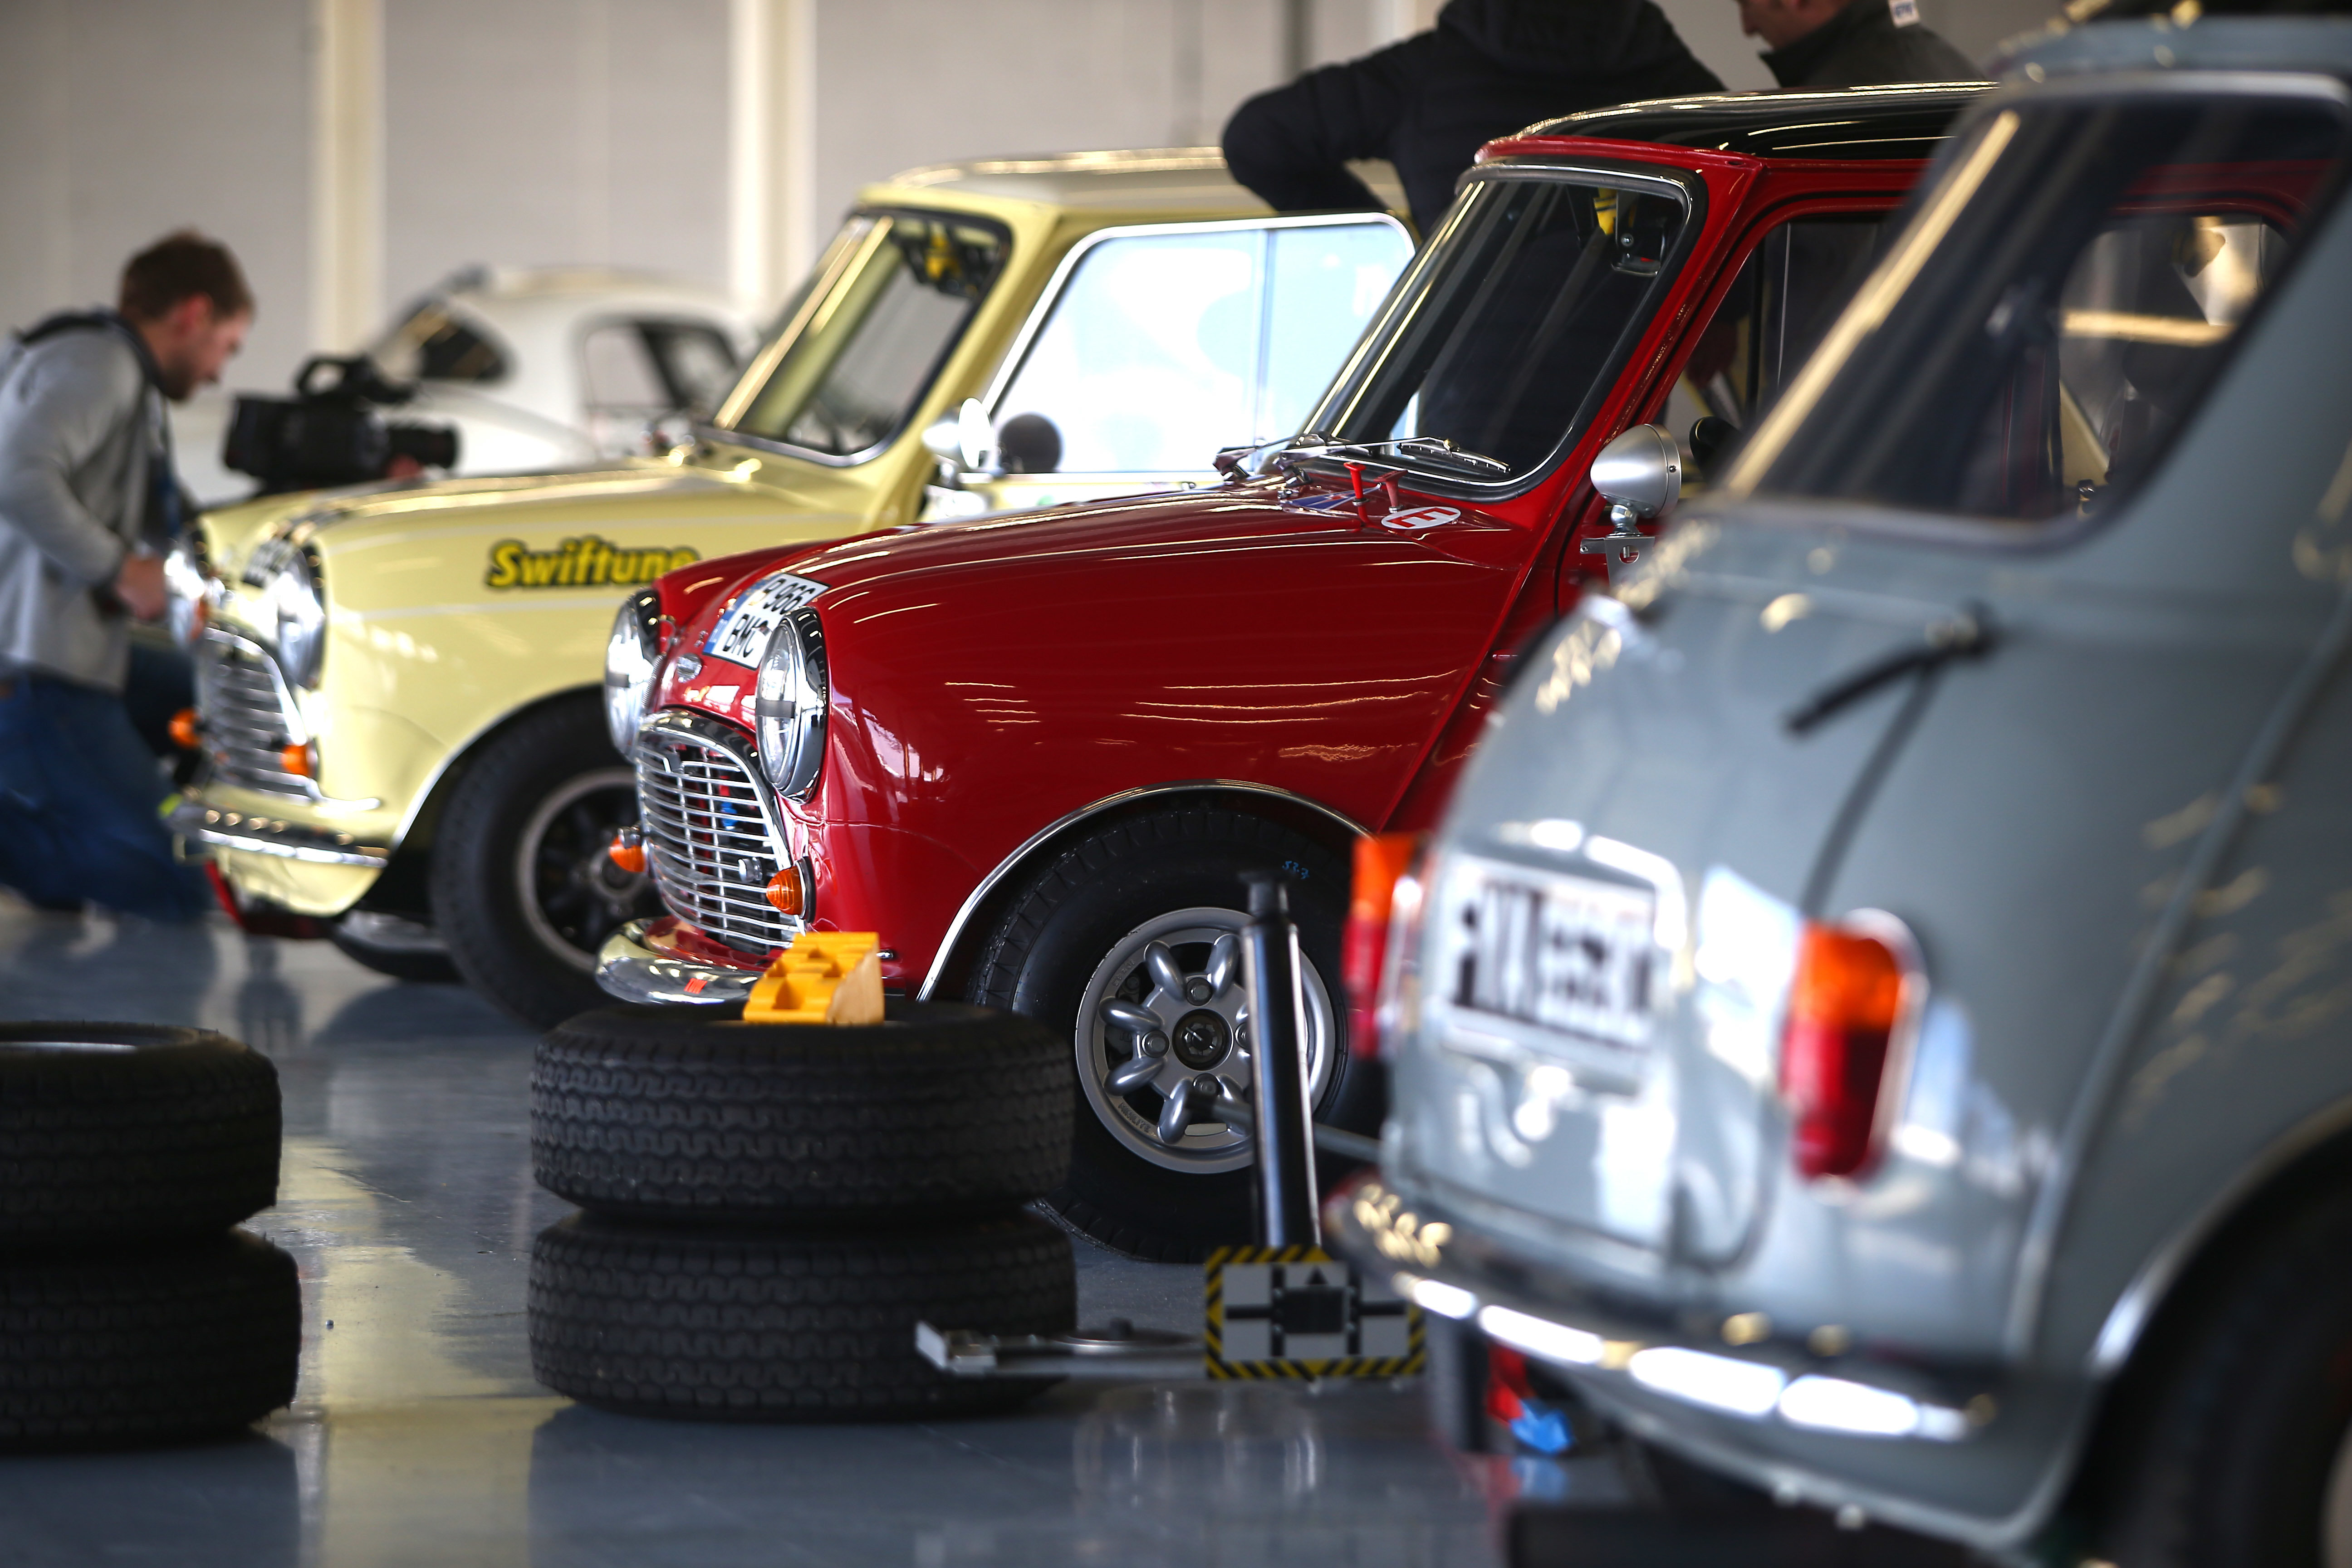 Silverstone Classic - Minis in Garage